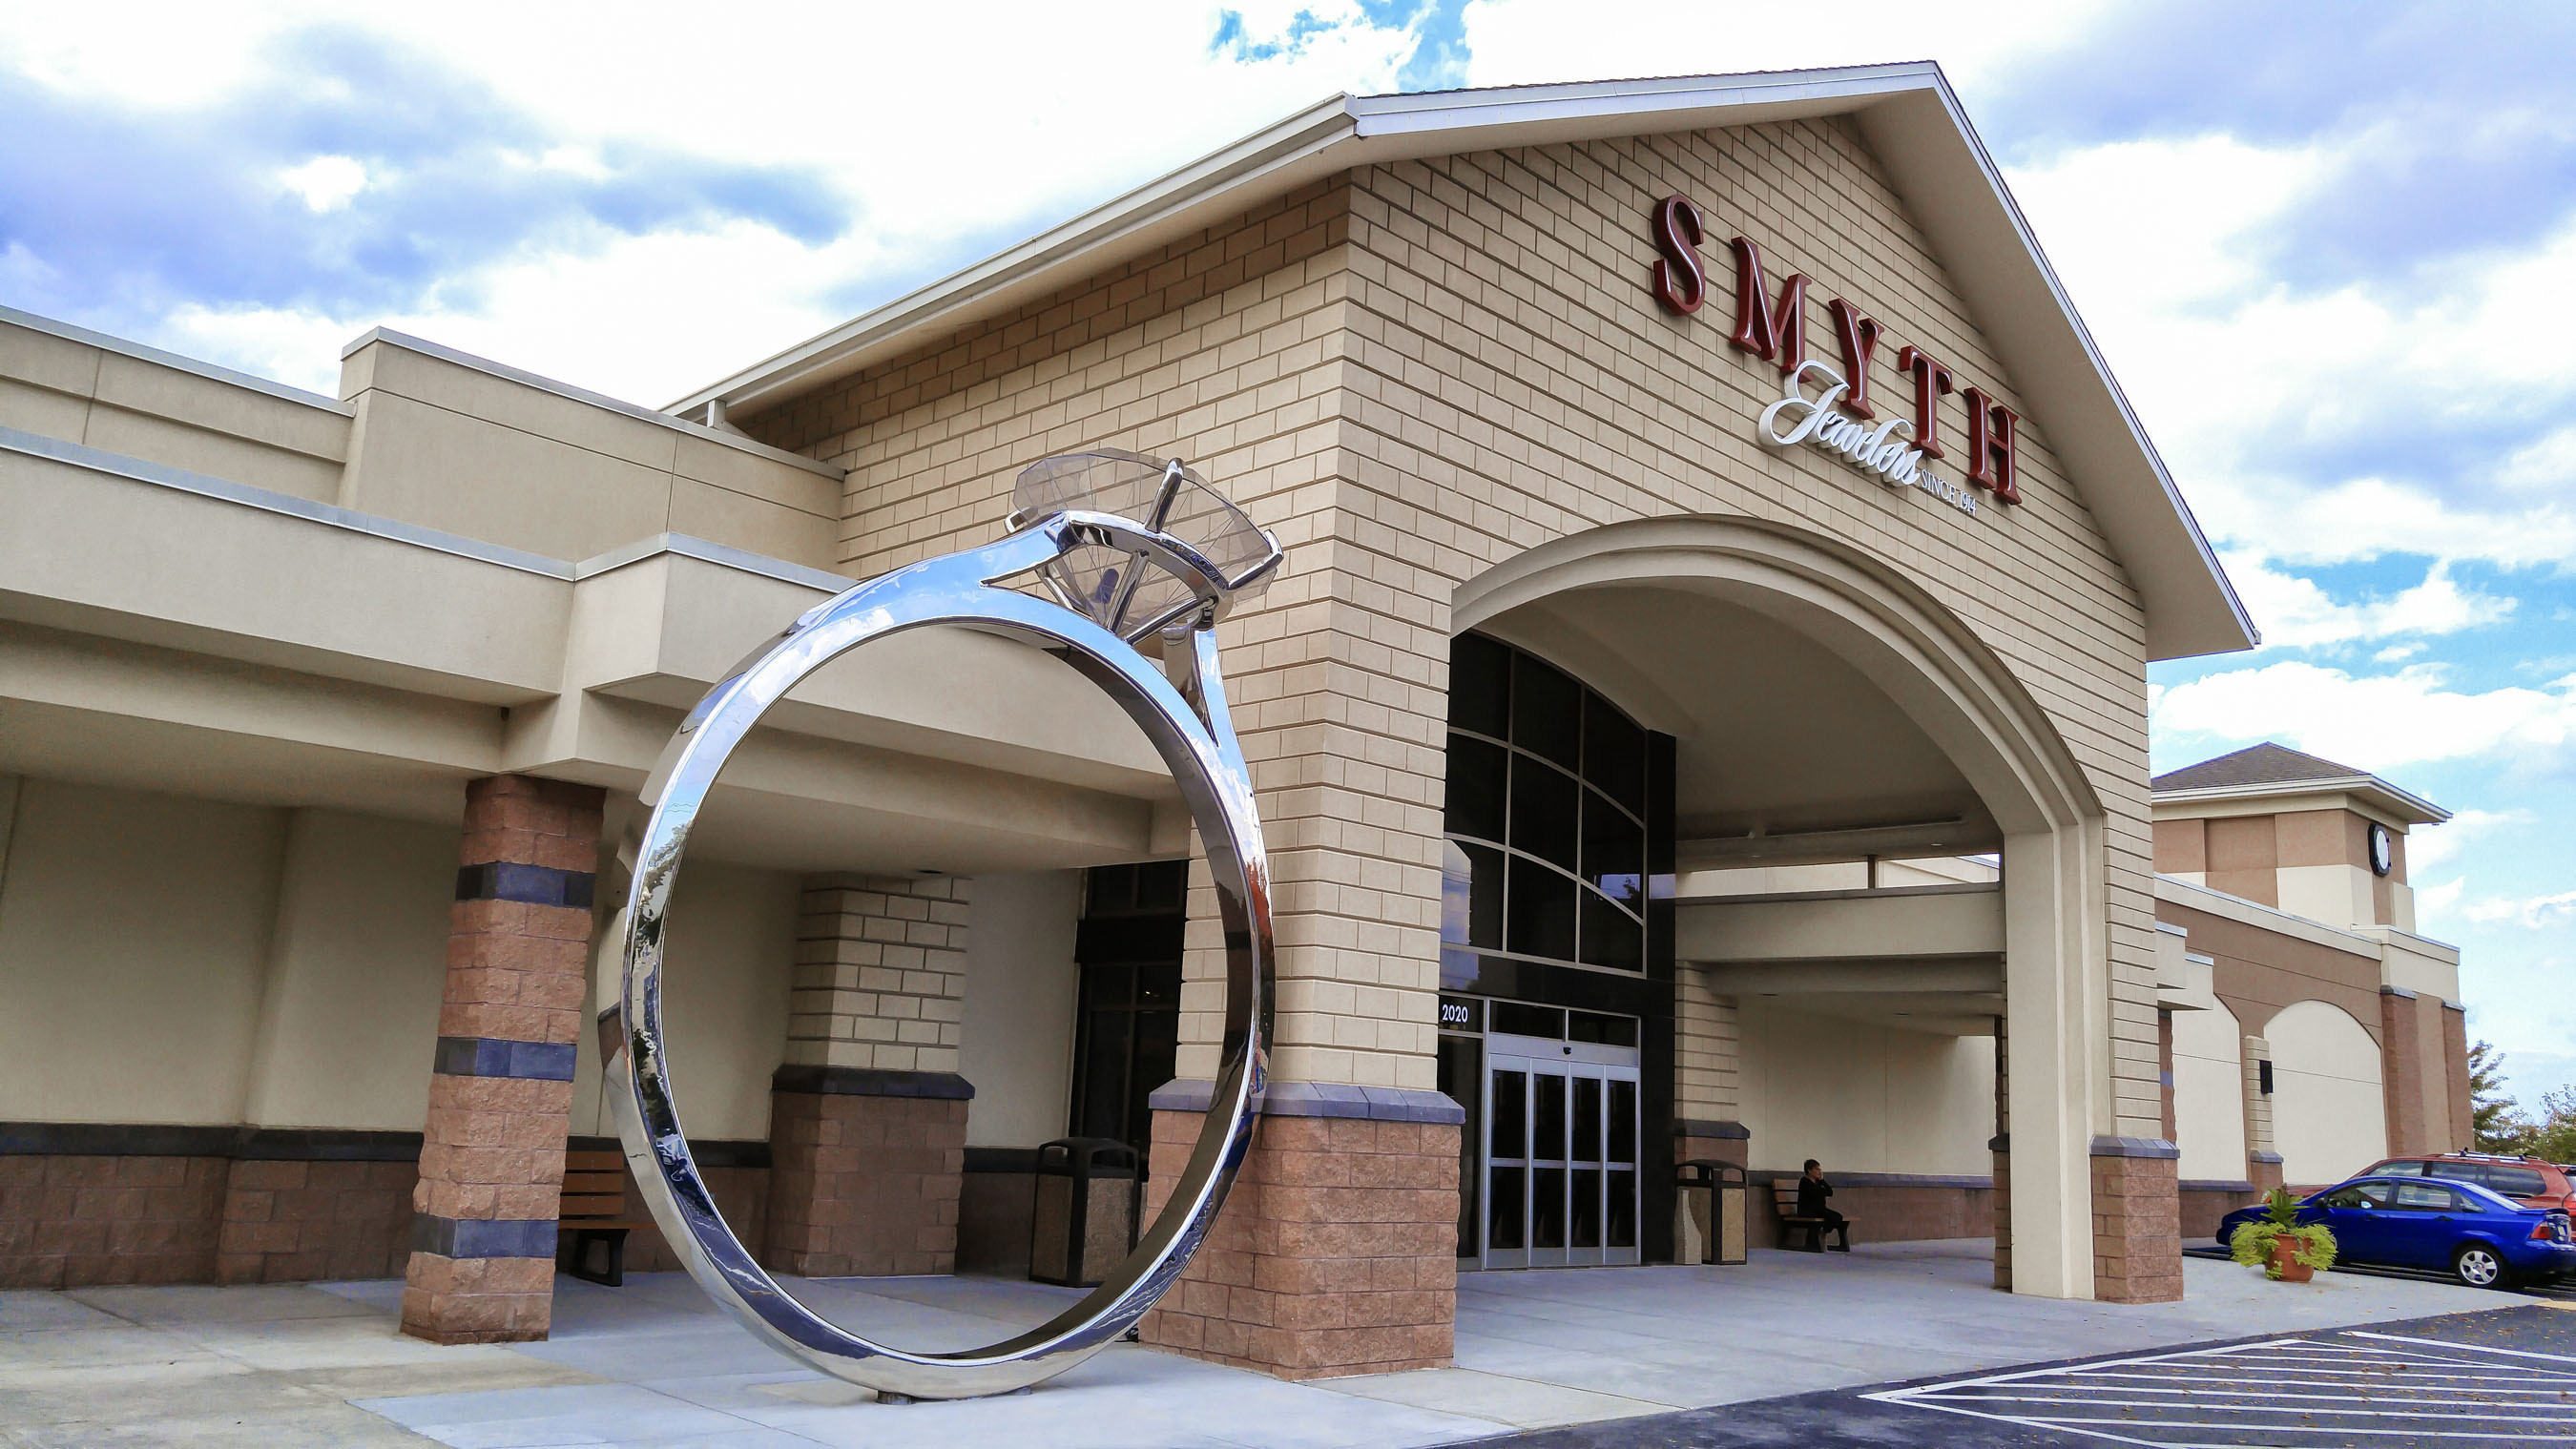 Smyth Jewelers, the largest jewelry retailer on the East Coast, and Uneek Fine Jewelry have taken the engagement ring to a whole new level of big.